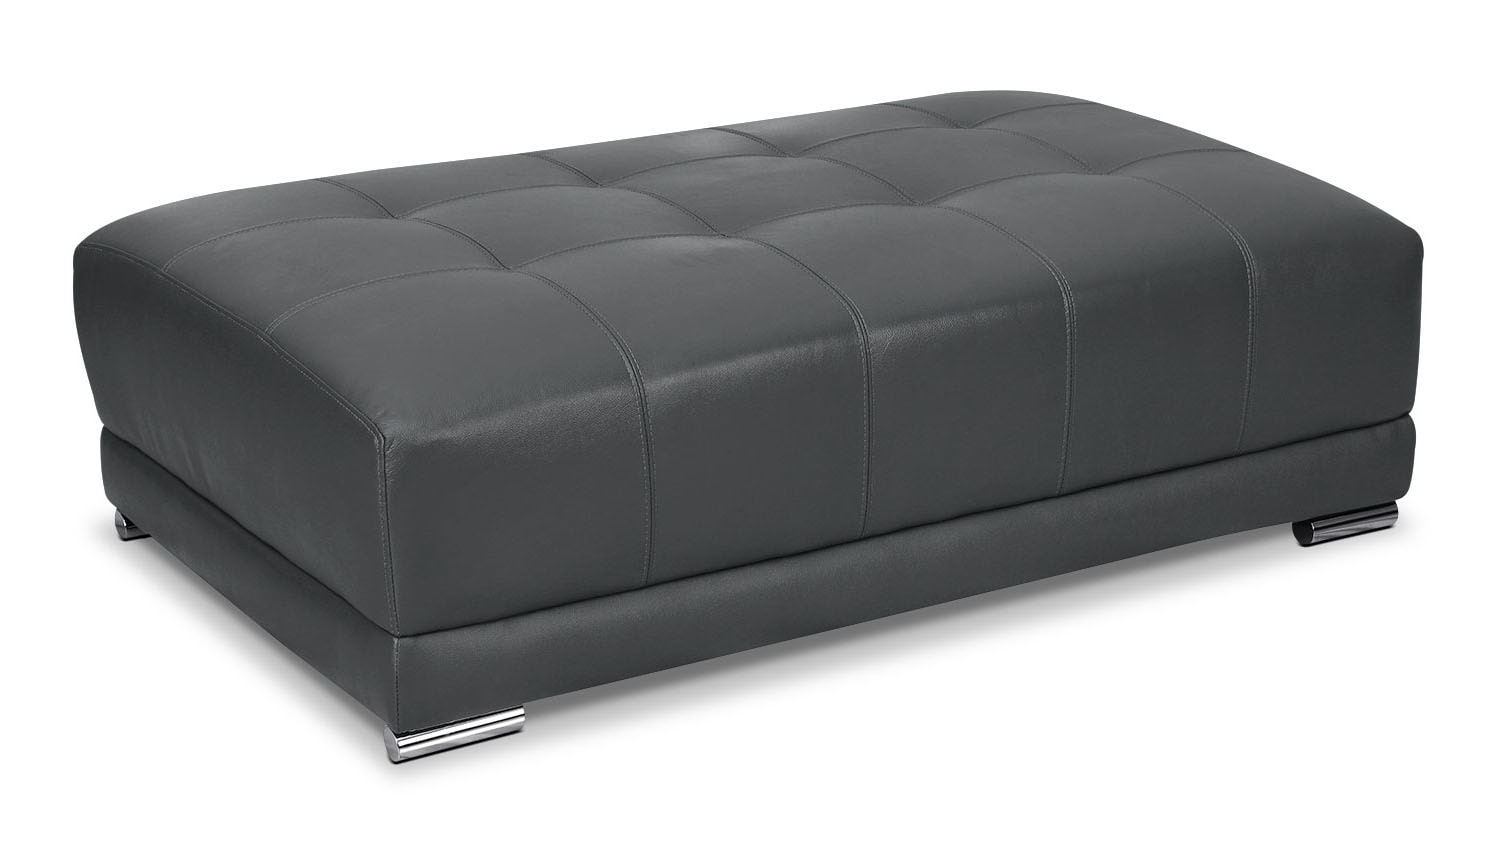 Living Room Furniture - Rylee Genuine Leather Ottoman - Grey